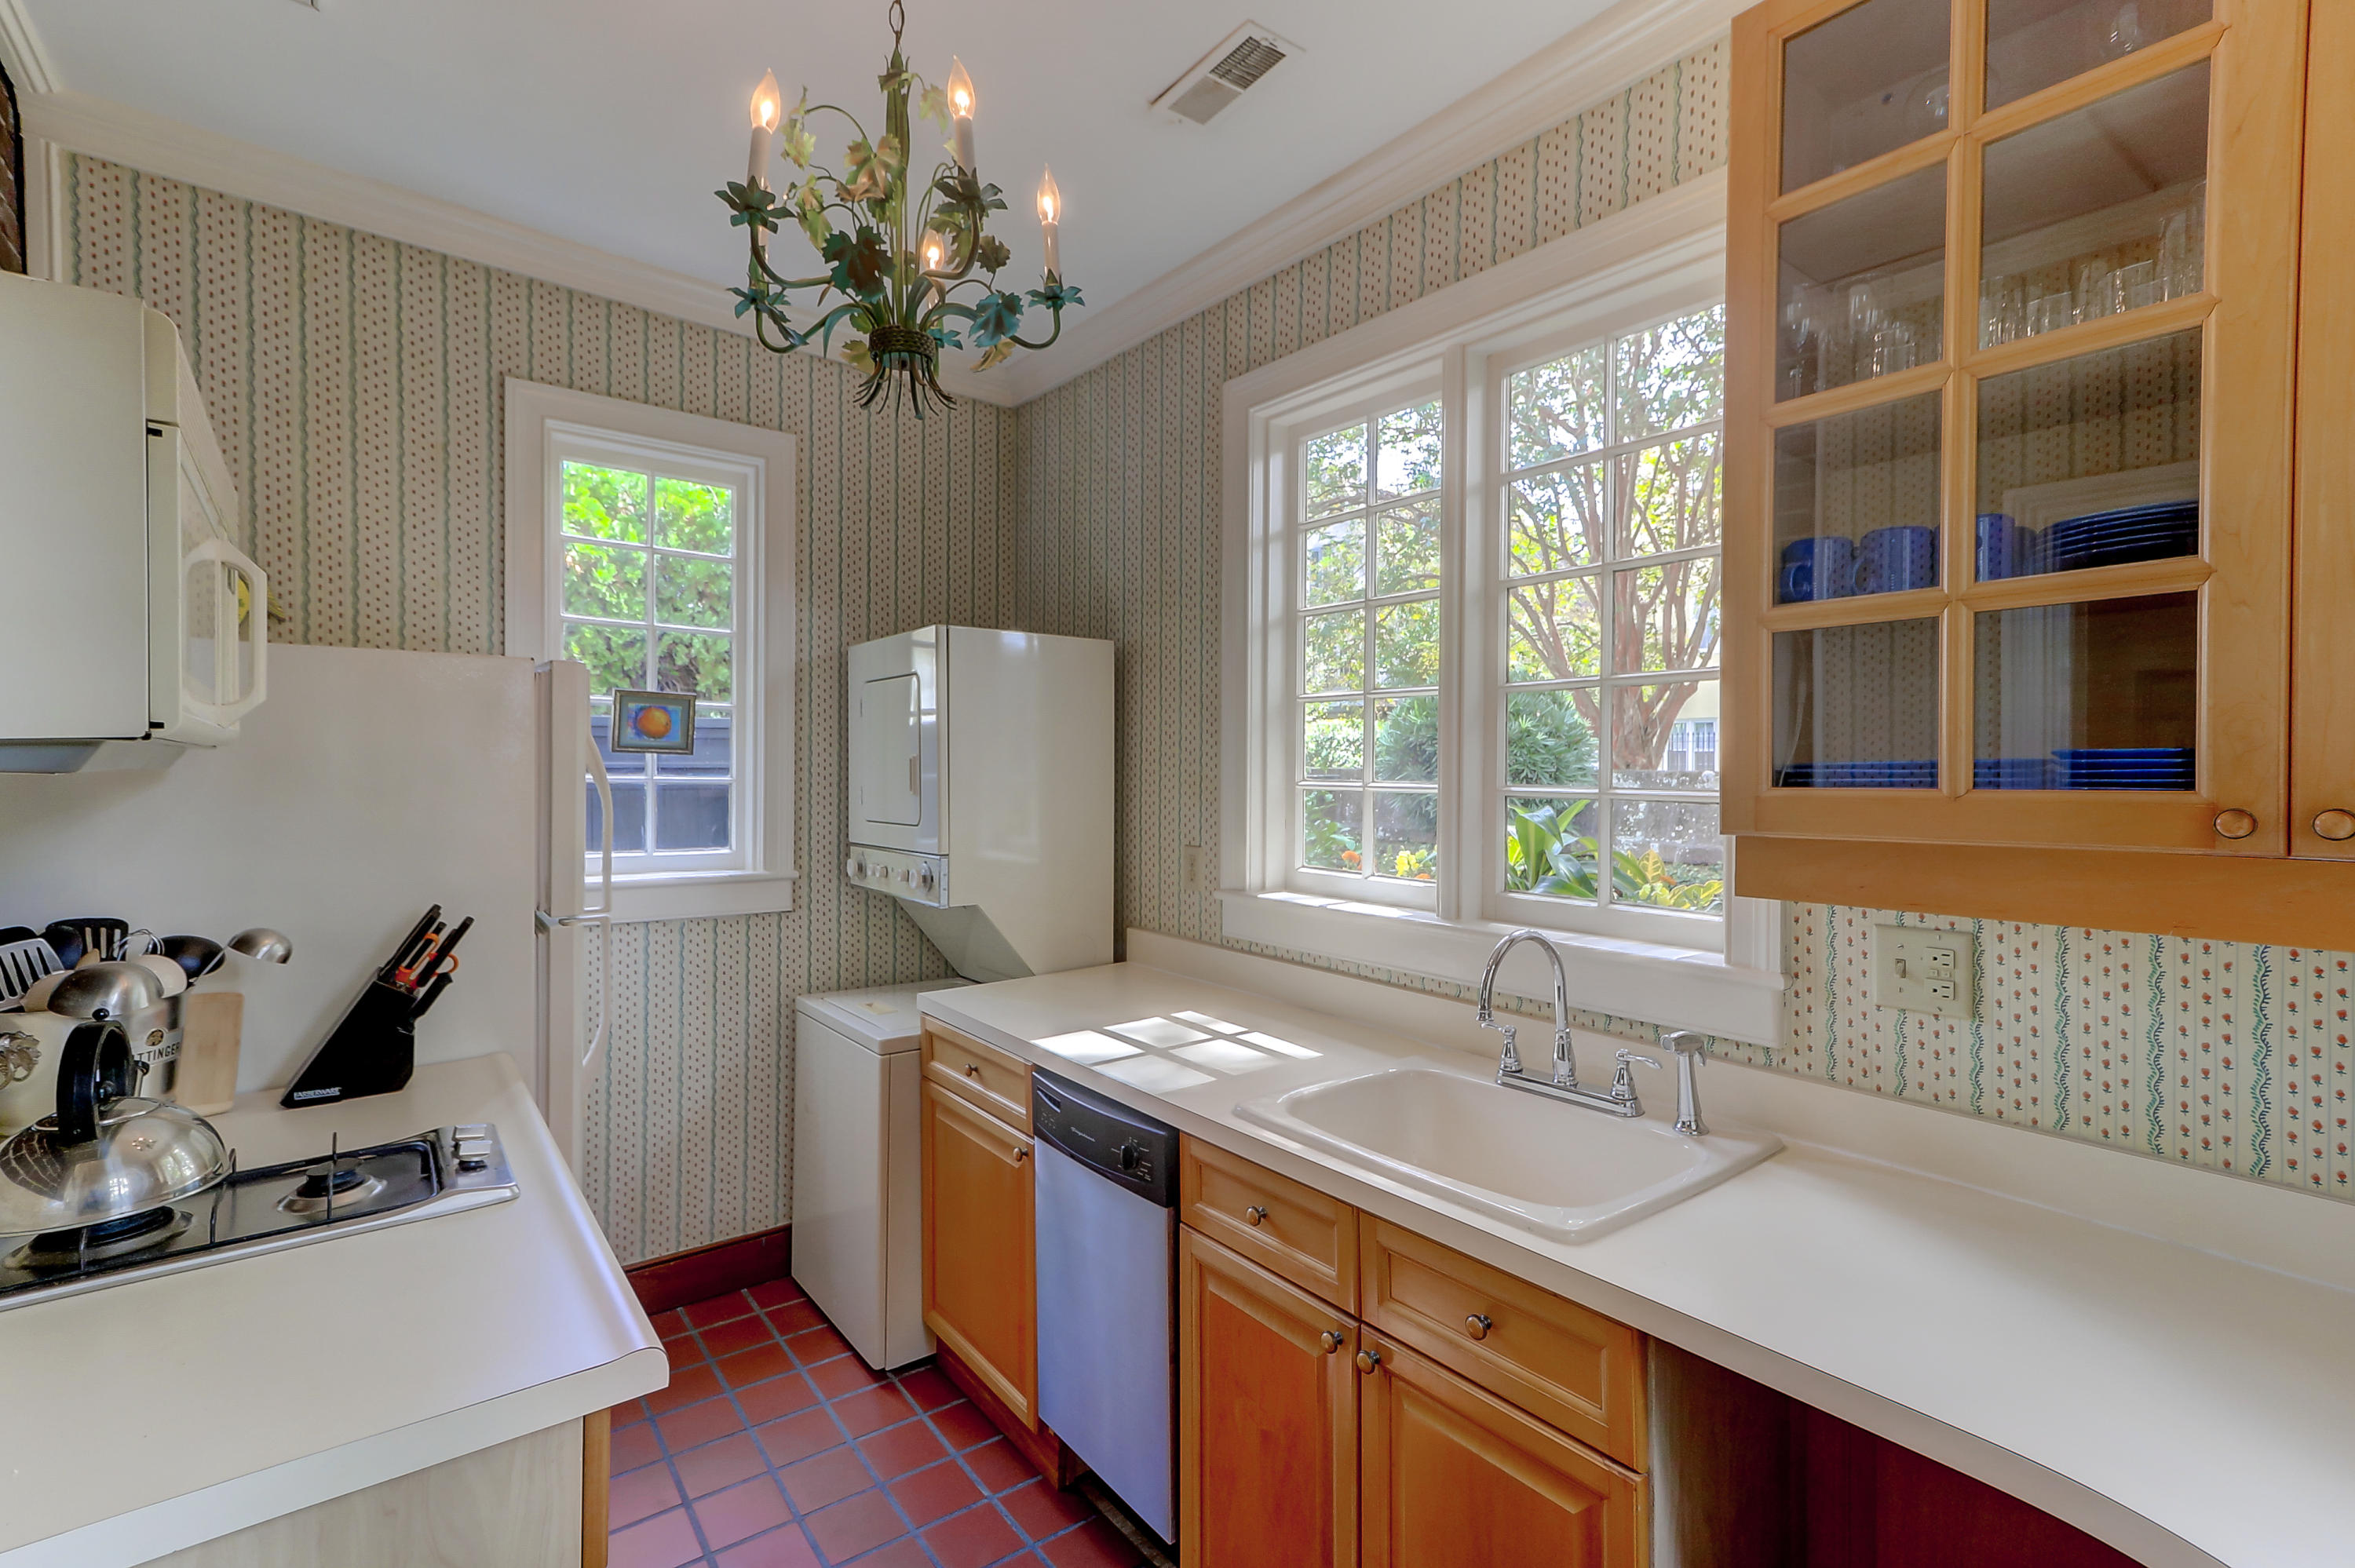 8/10 Ropemakers Lane Charleston, SC 29401